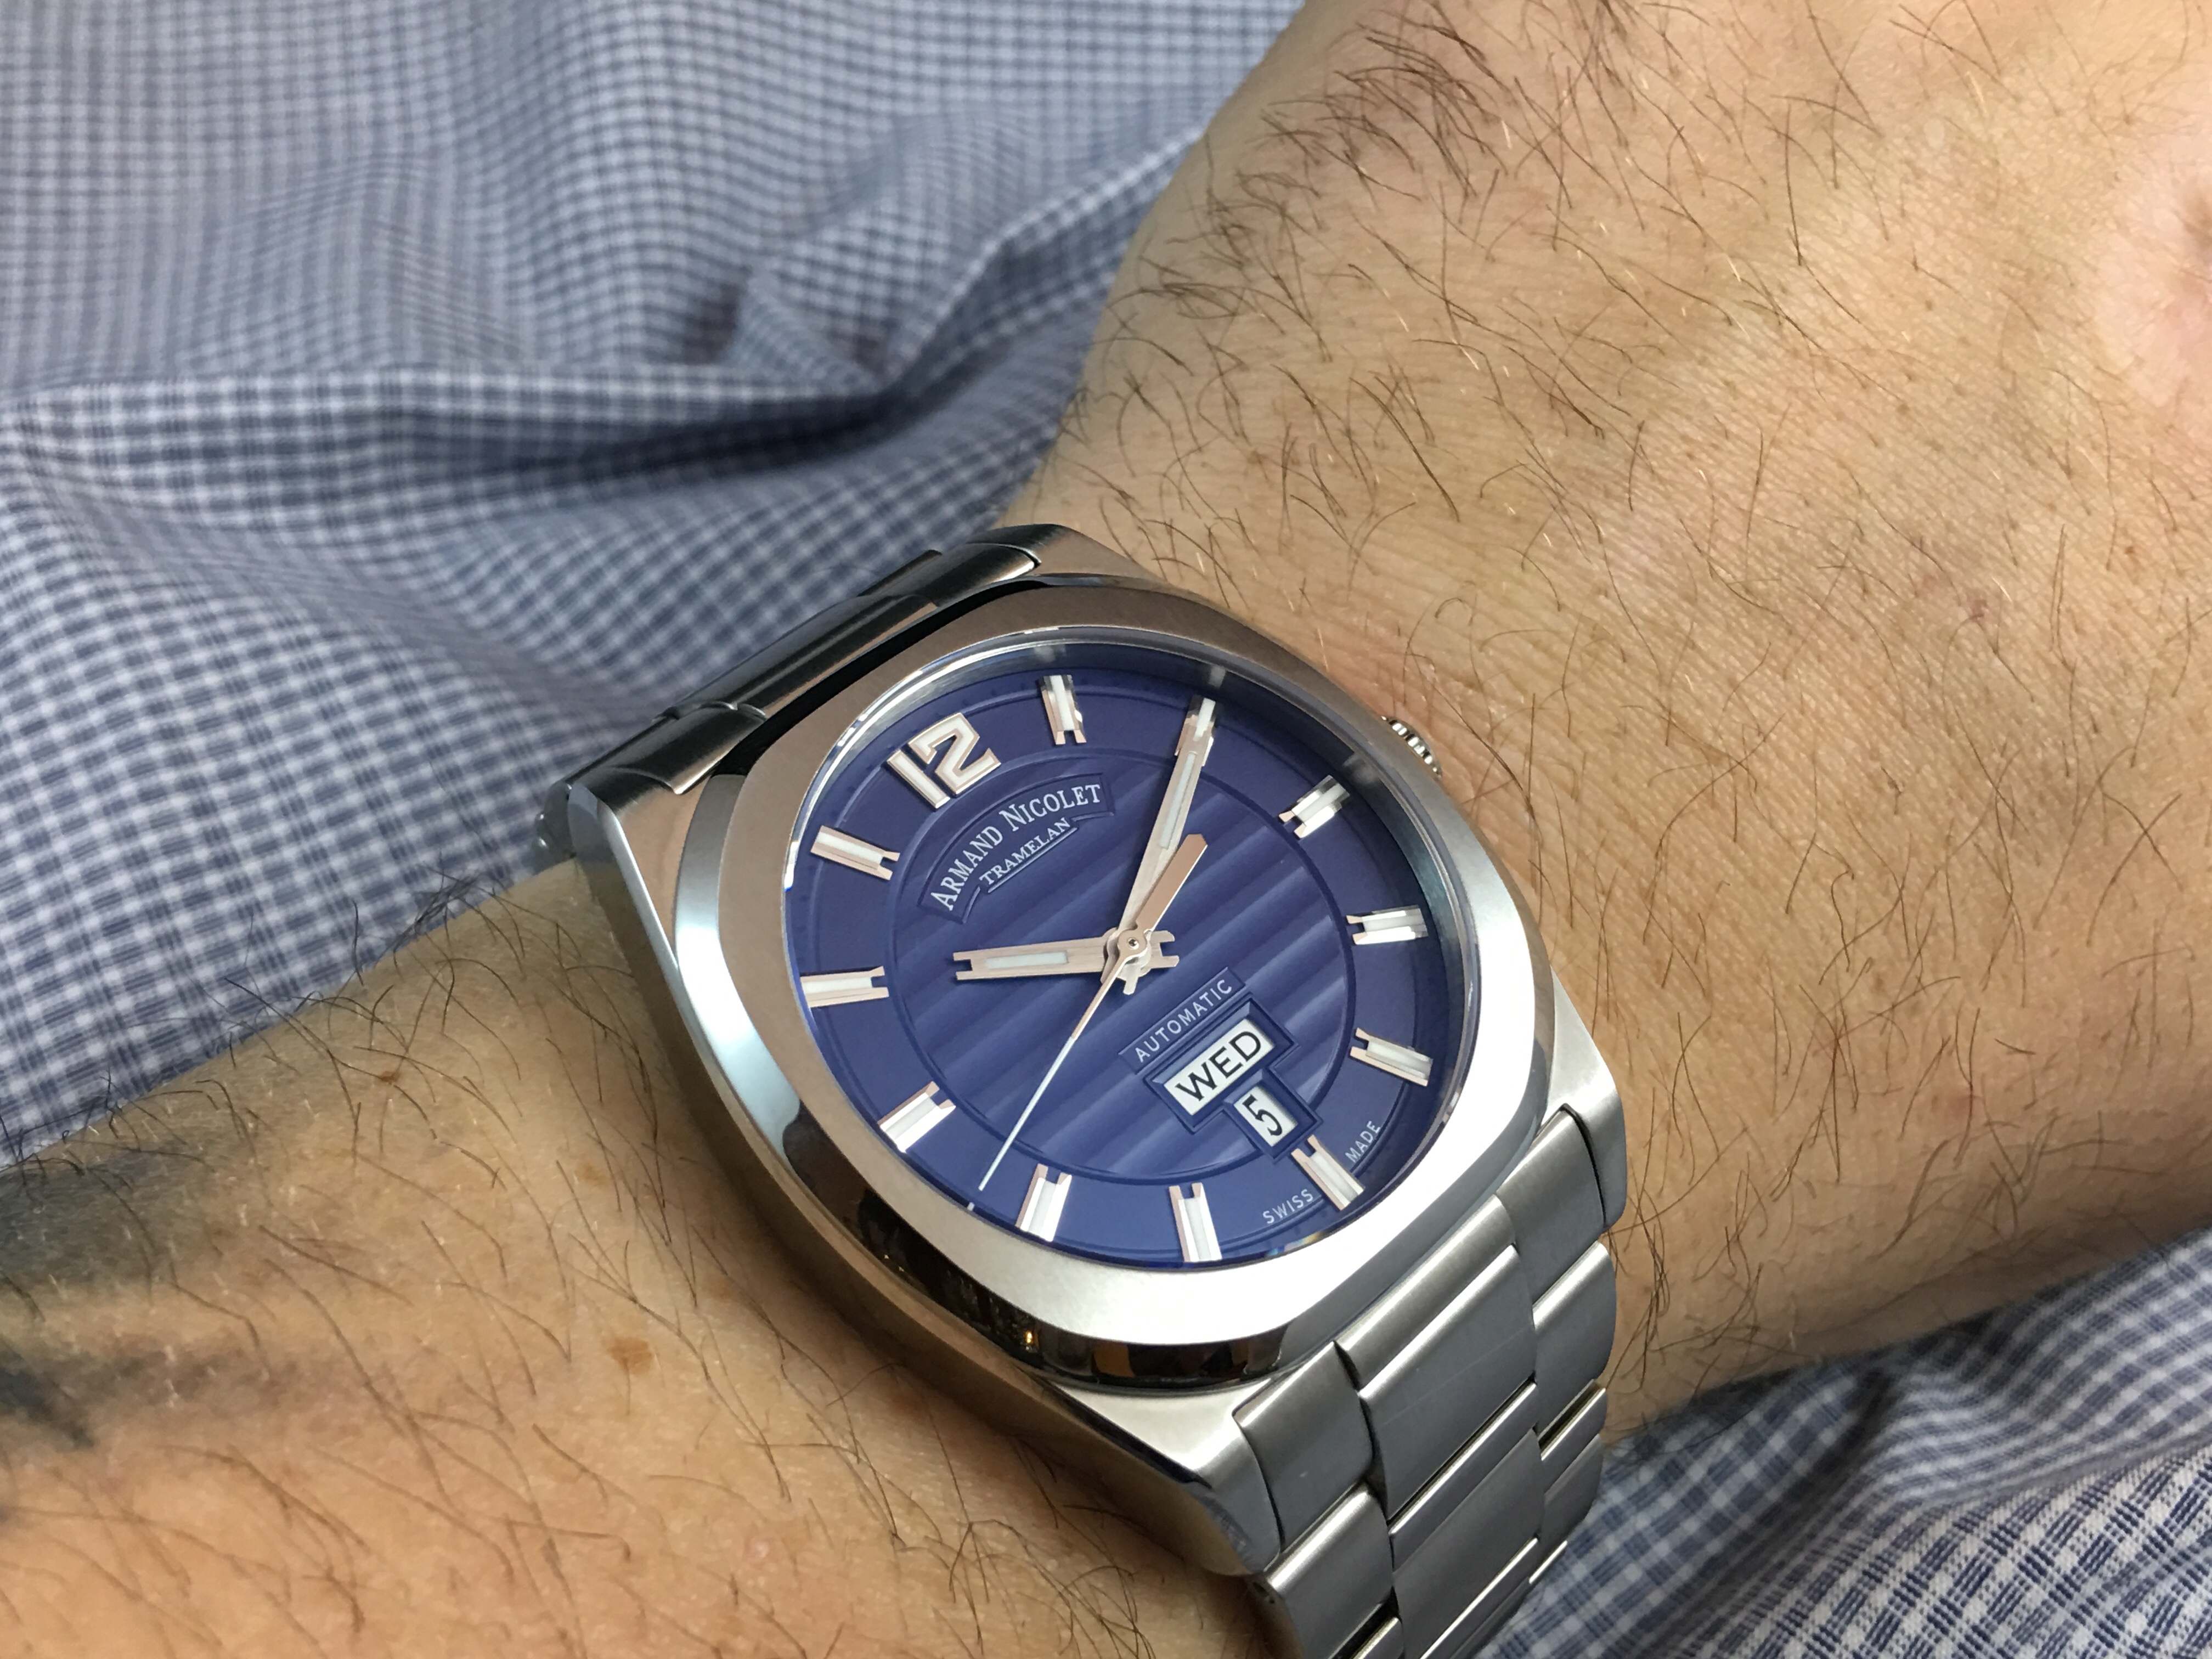 Armand nicolet j09 watch review for Armand nicolet watches